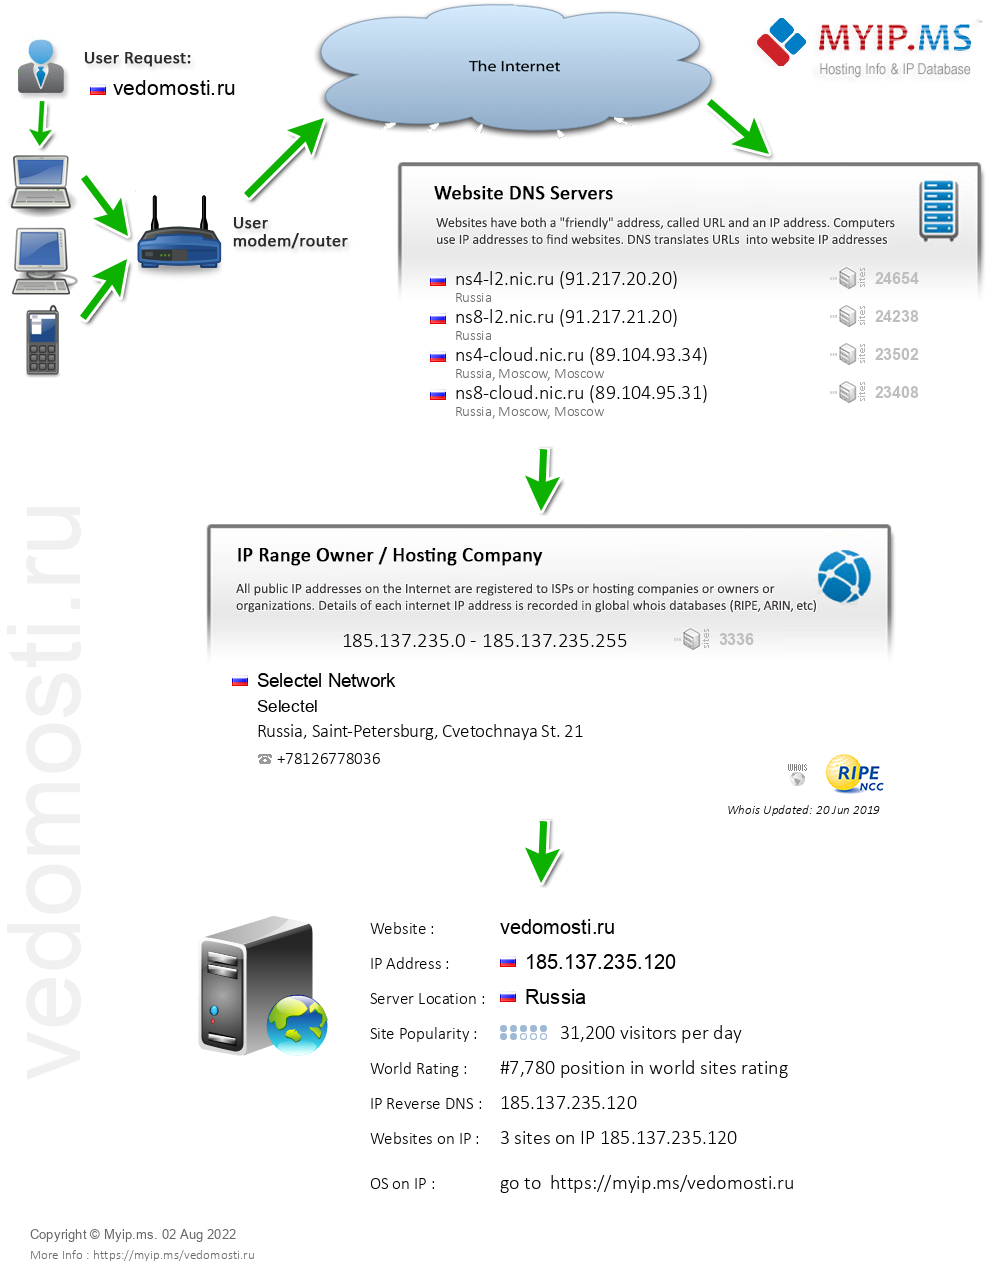 Vedomosti.ru - Website Hosting Visual IP Diagram